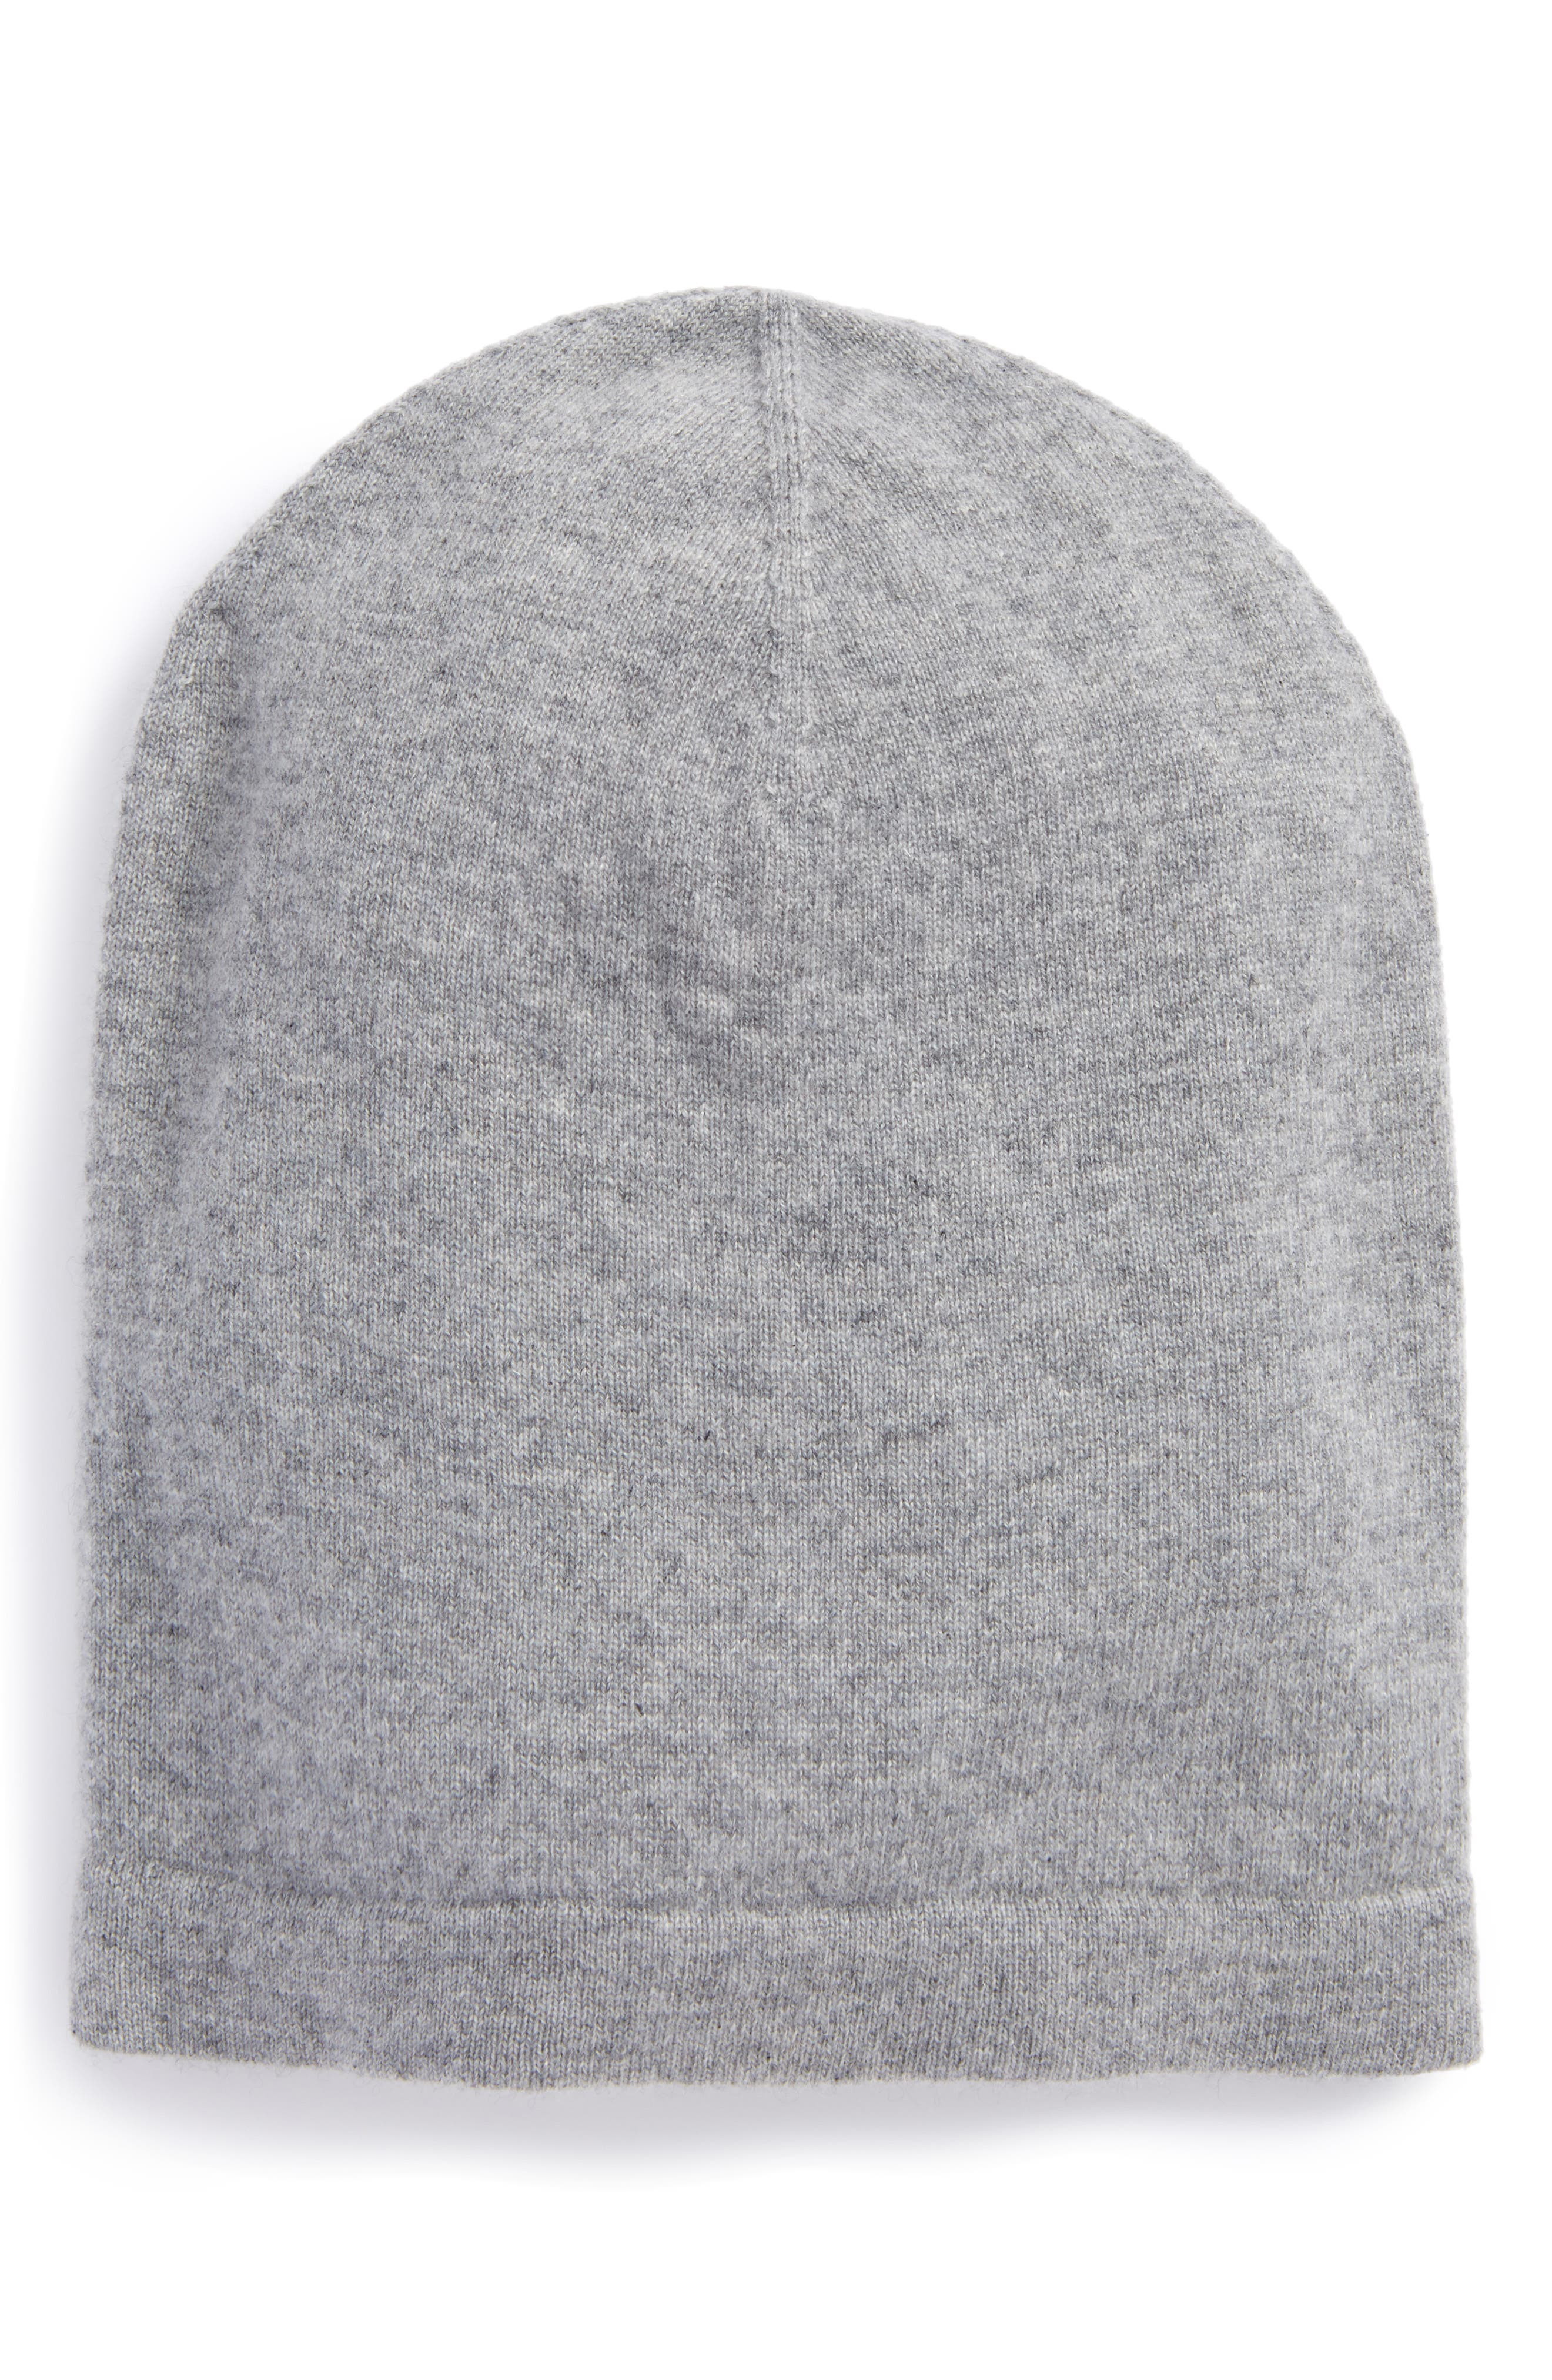 Alternate Image 1 Selected - Nordstrom Men's Shop Cashmere Beanie